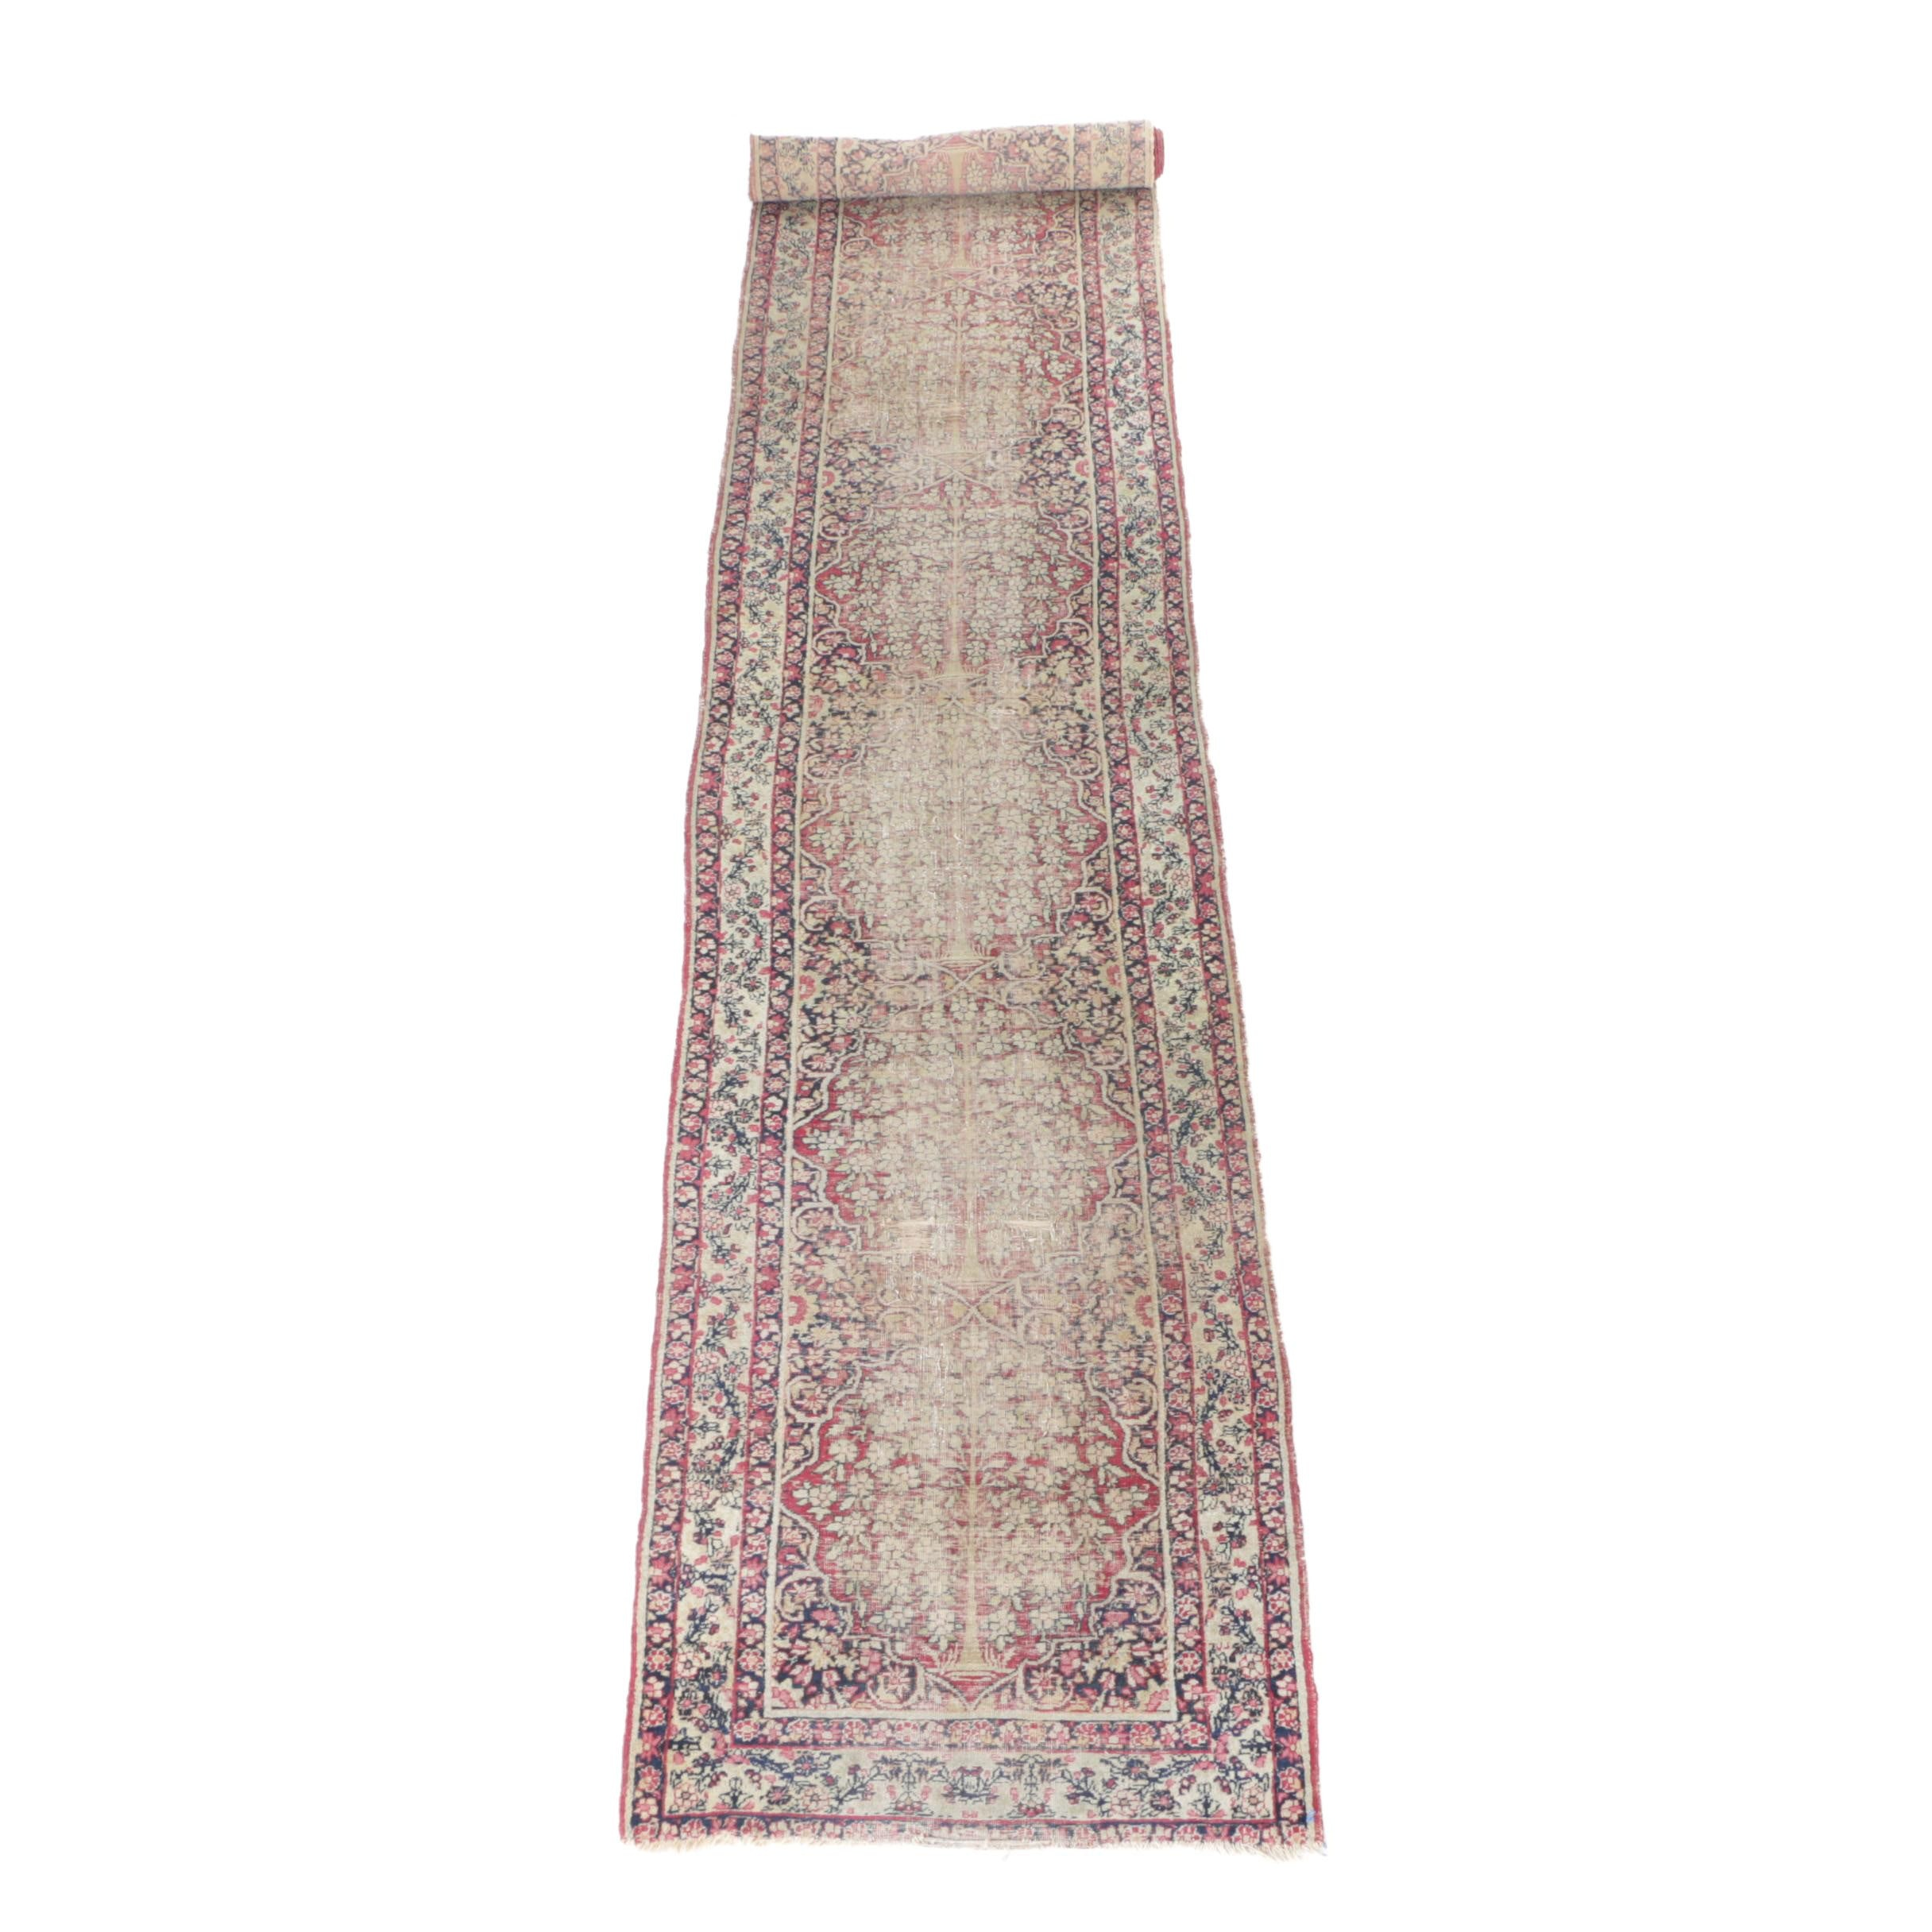 Antique Hand-Knotted Persian Kerman Carpet Runner